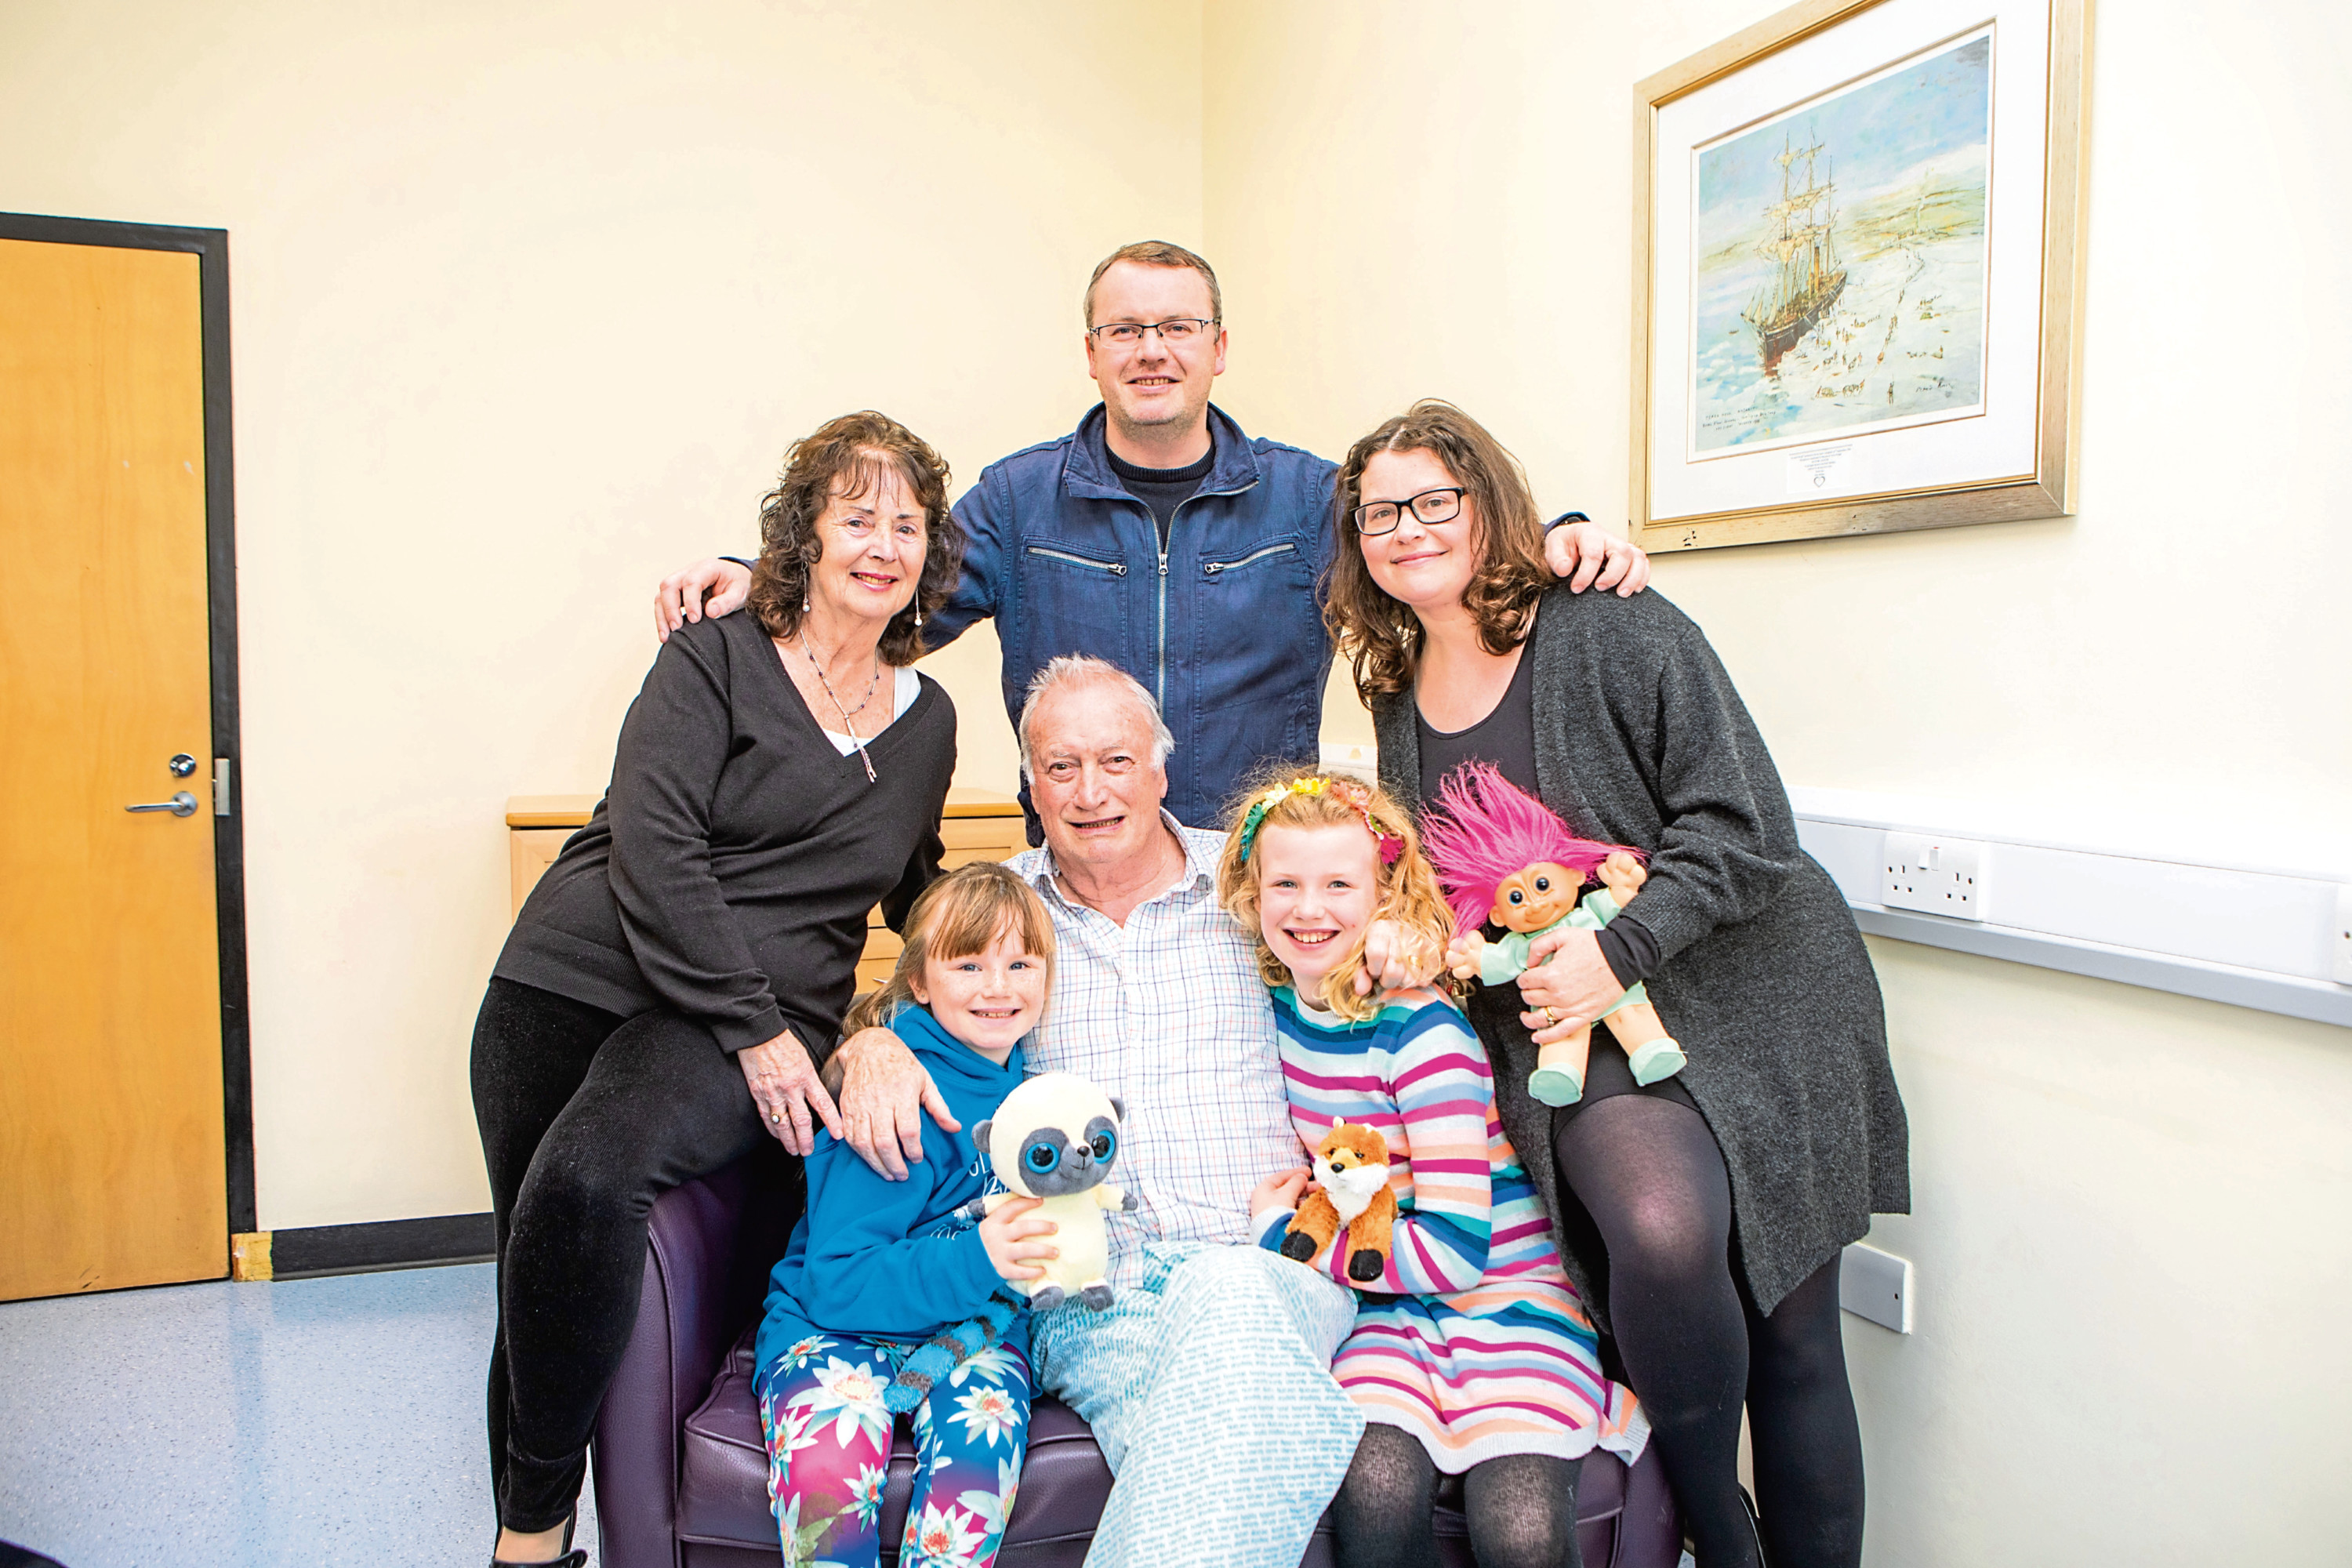 Brian McSweeney, pictured with his family after his heart scare last year.